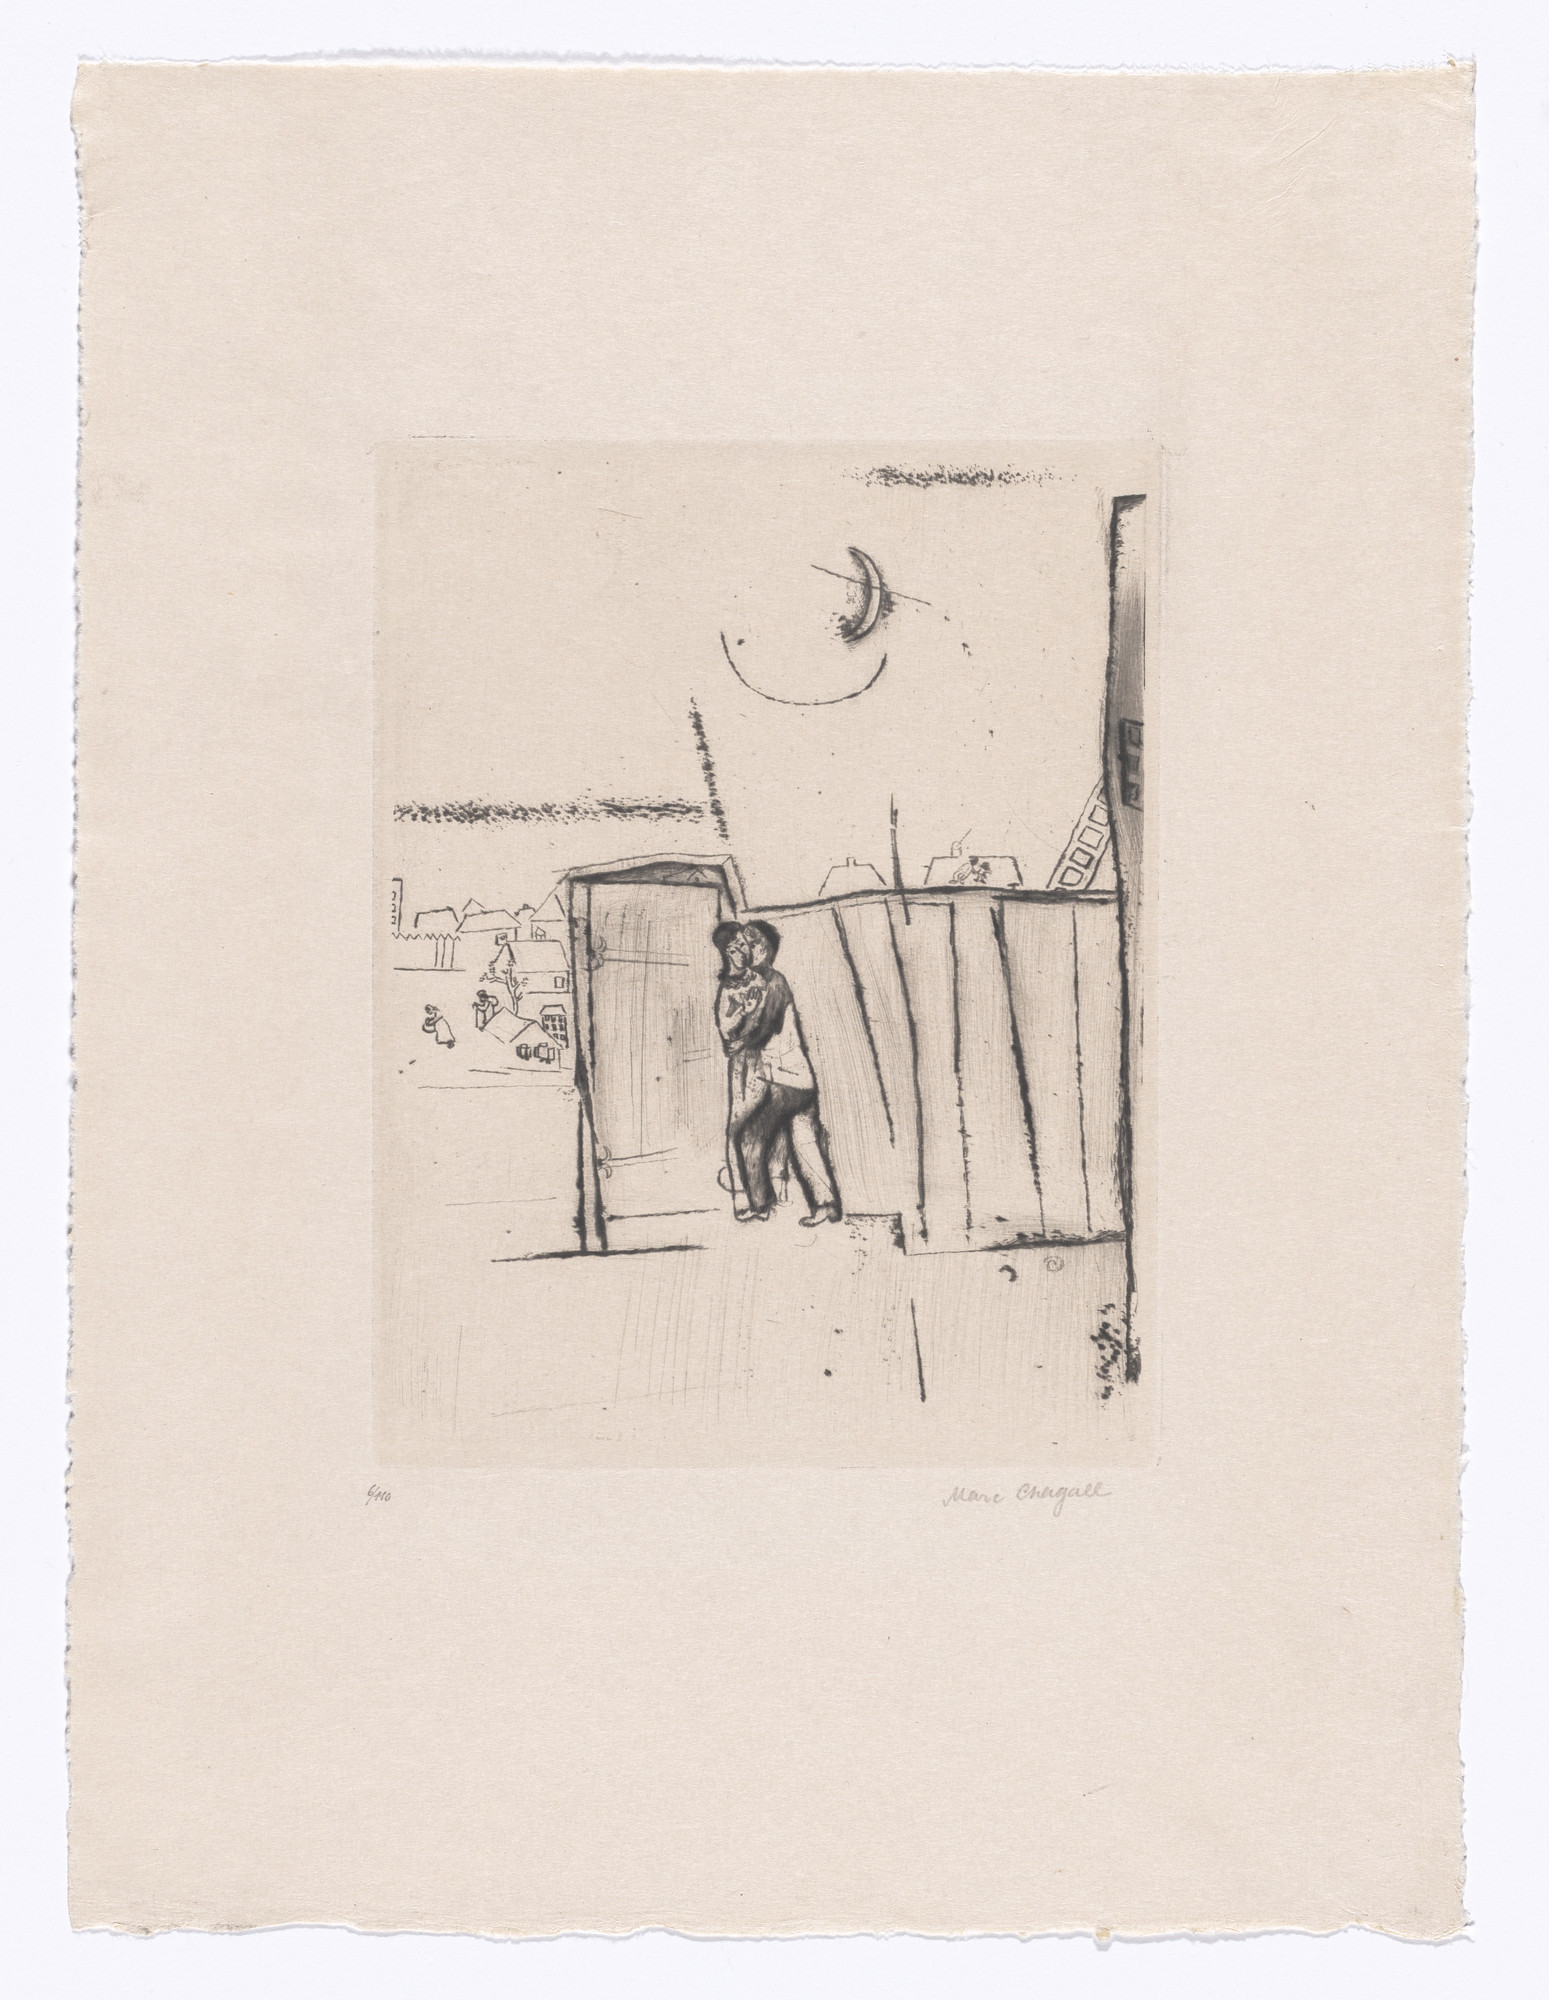 Marc Chagall. At the Gate (Vor dem Tore) from My Life (Mein Leben). 1922, published 1923